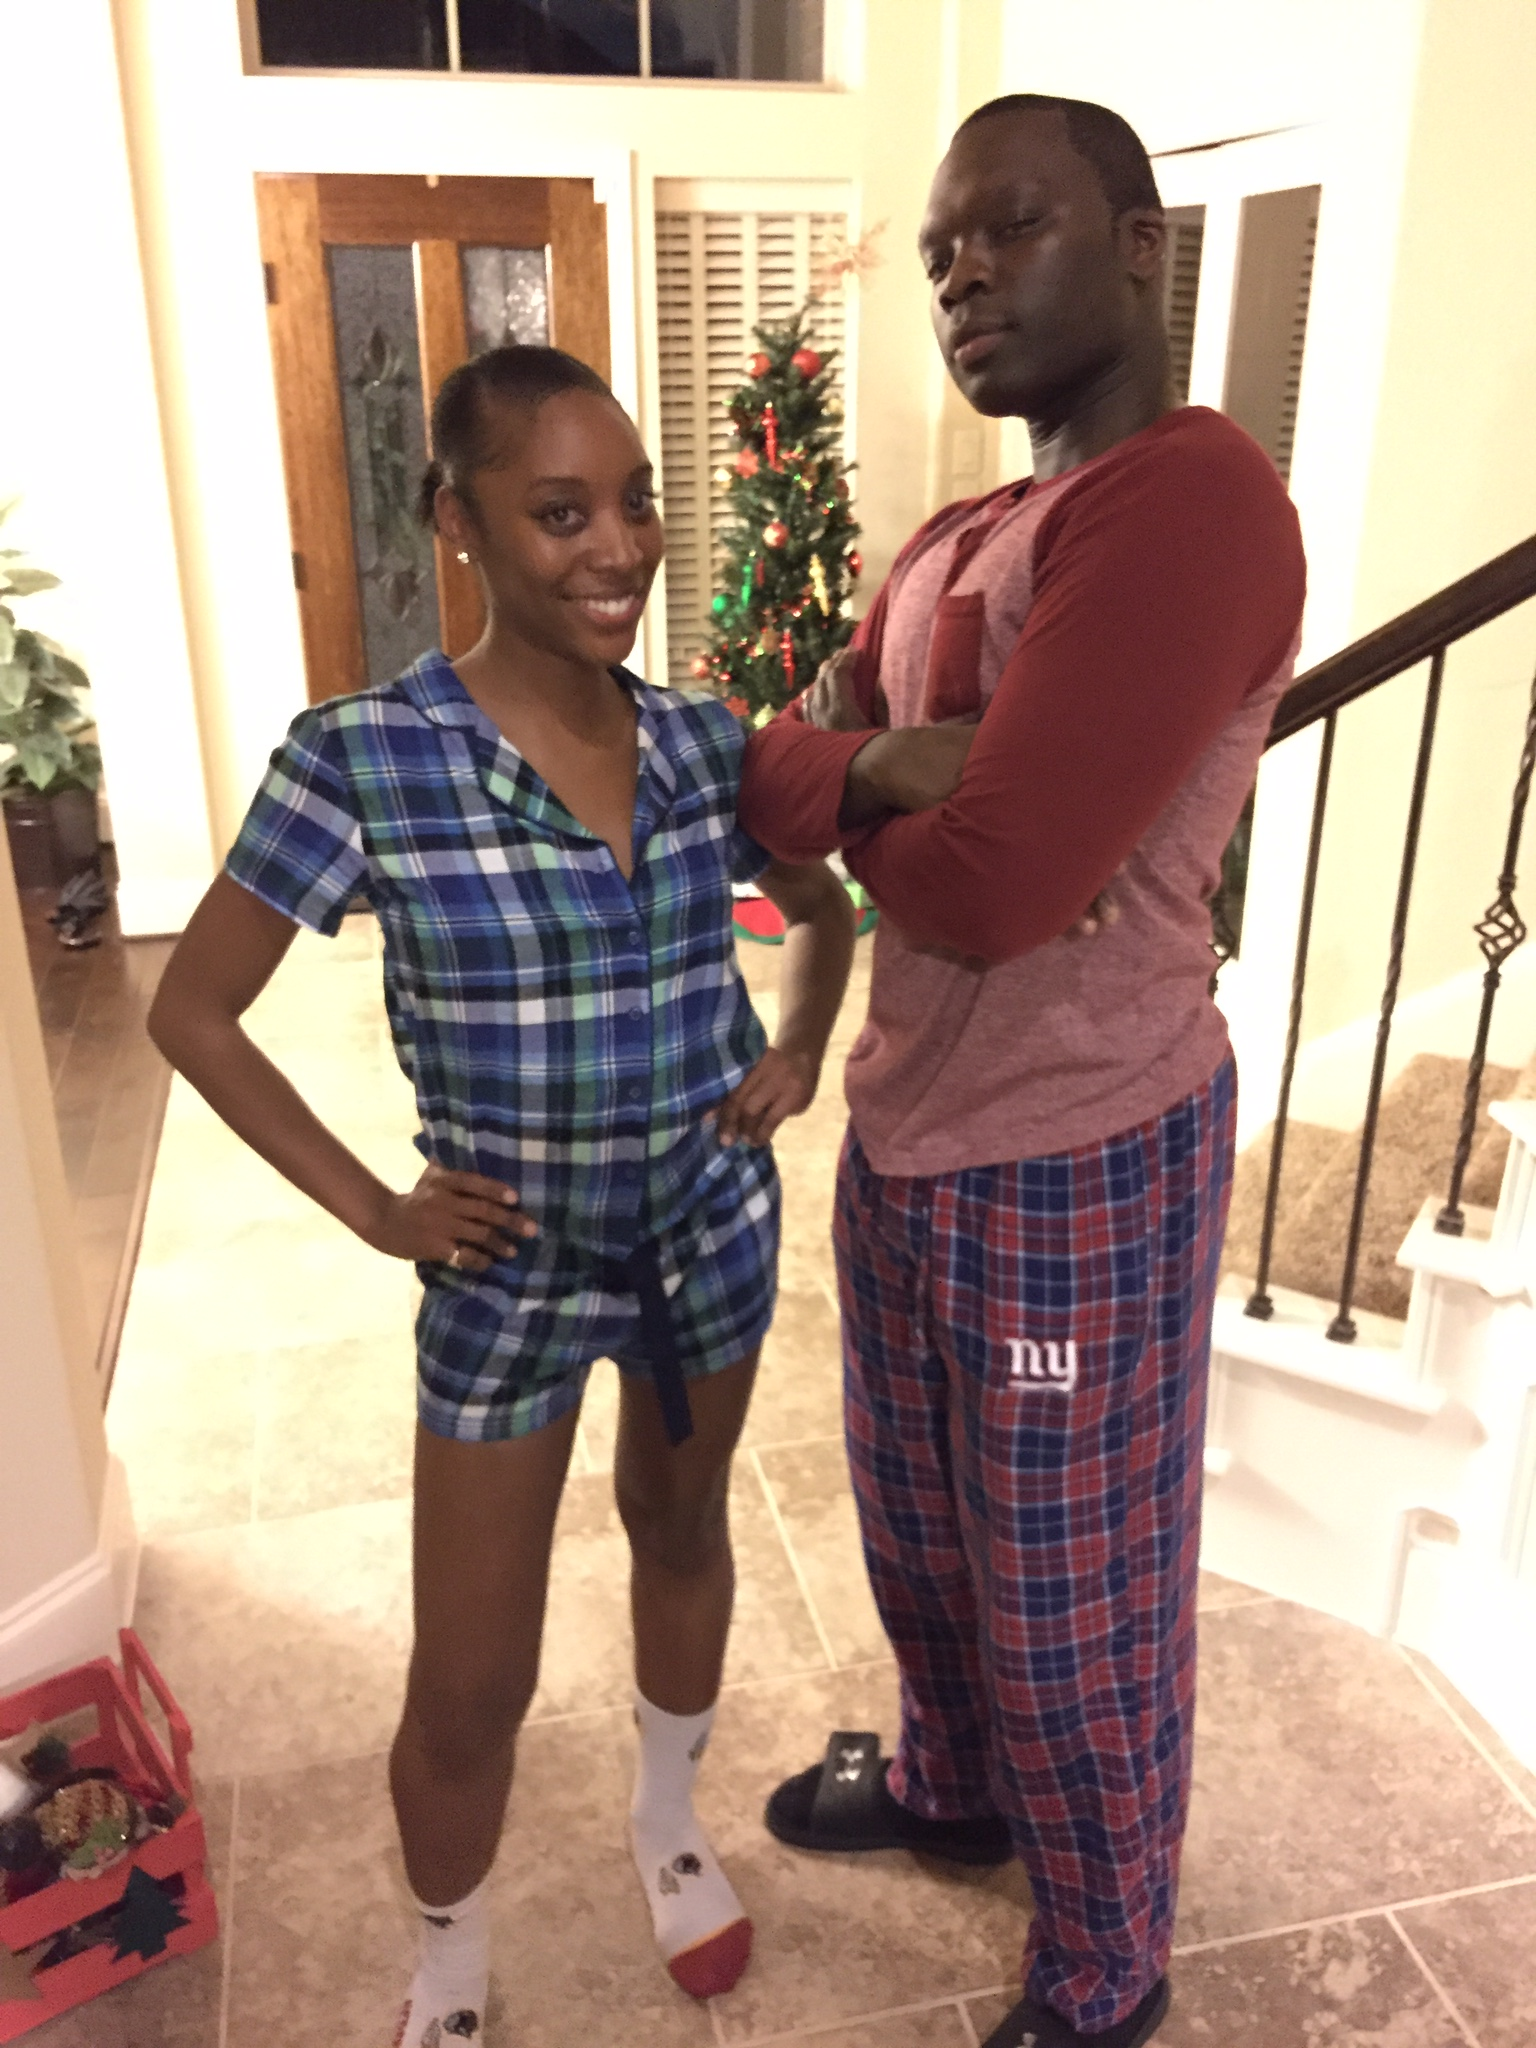 Holiday Pajama Party in Houston, Texas